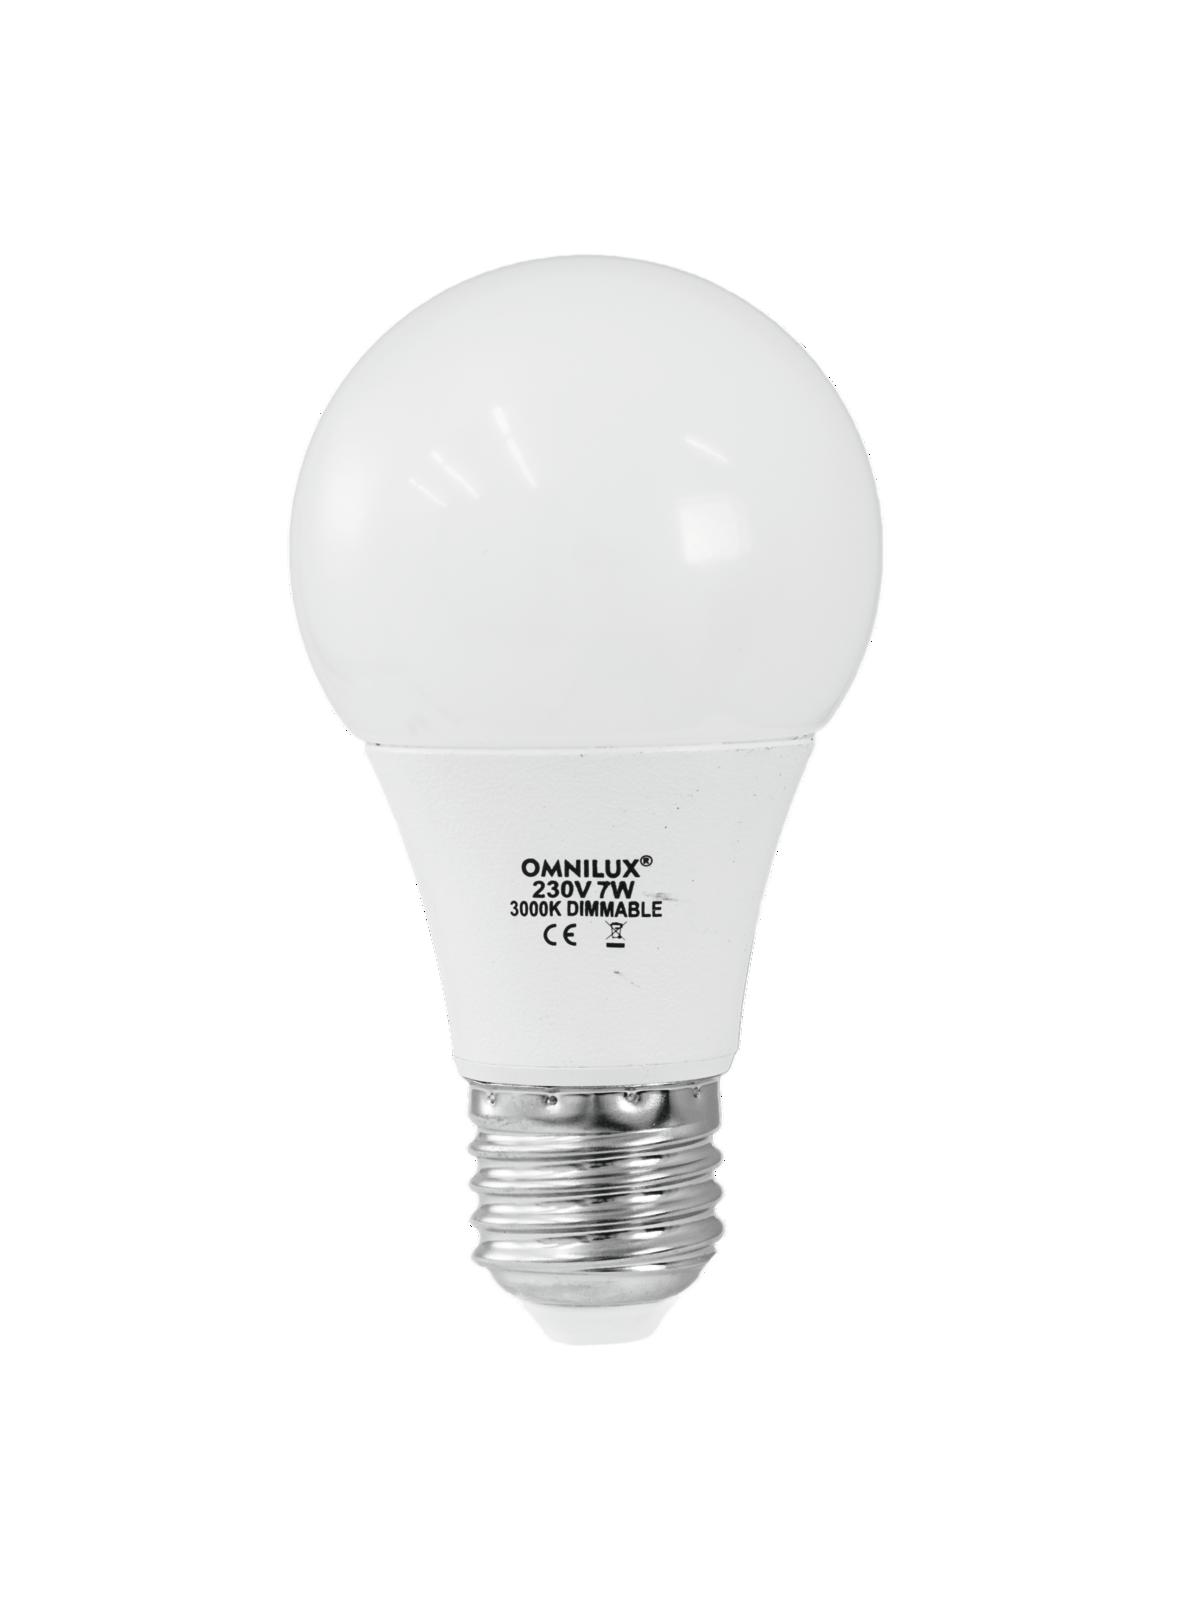 Lampada led dimmerabile LED A19 230V 7W E-27 3000K OMNILUX